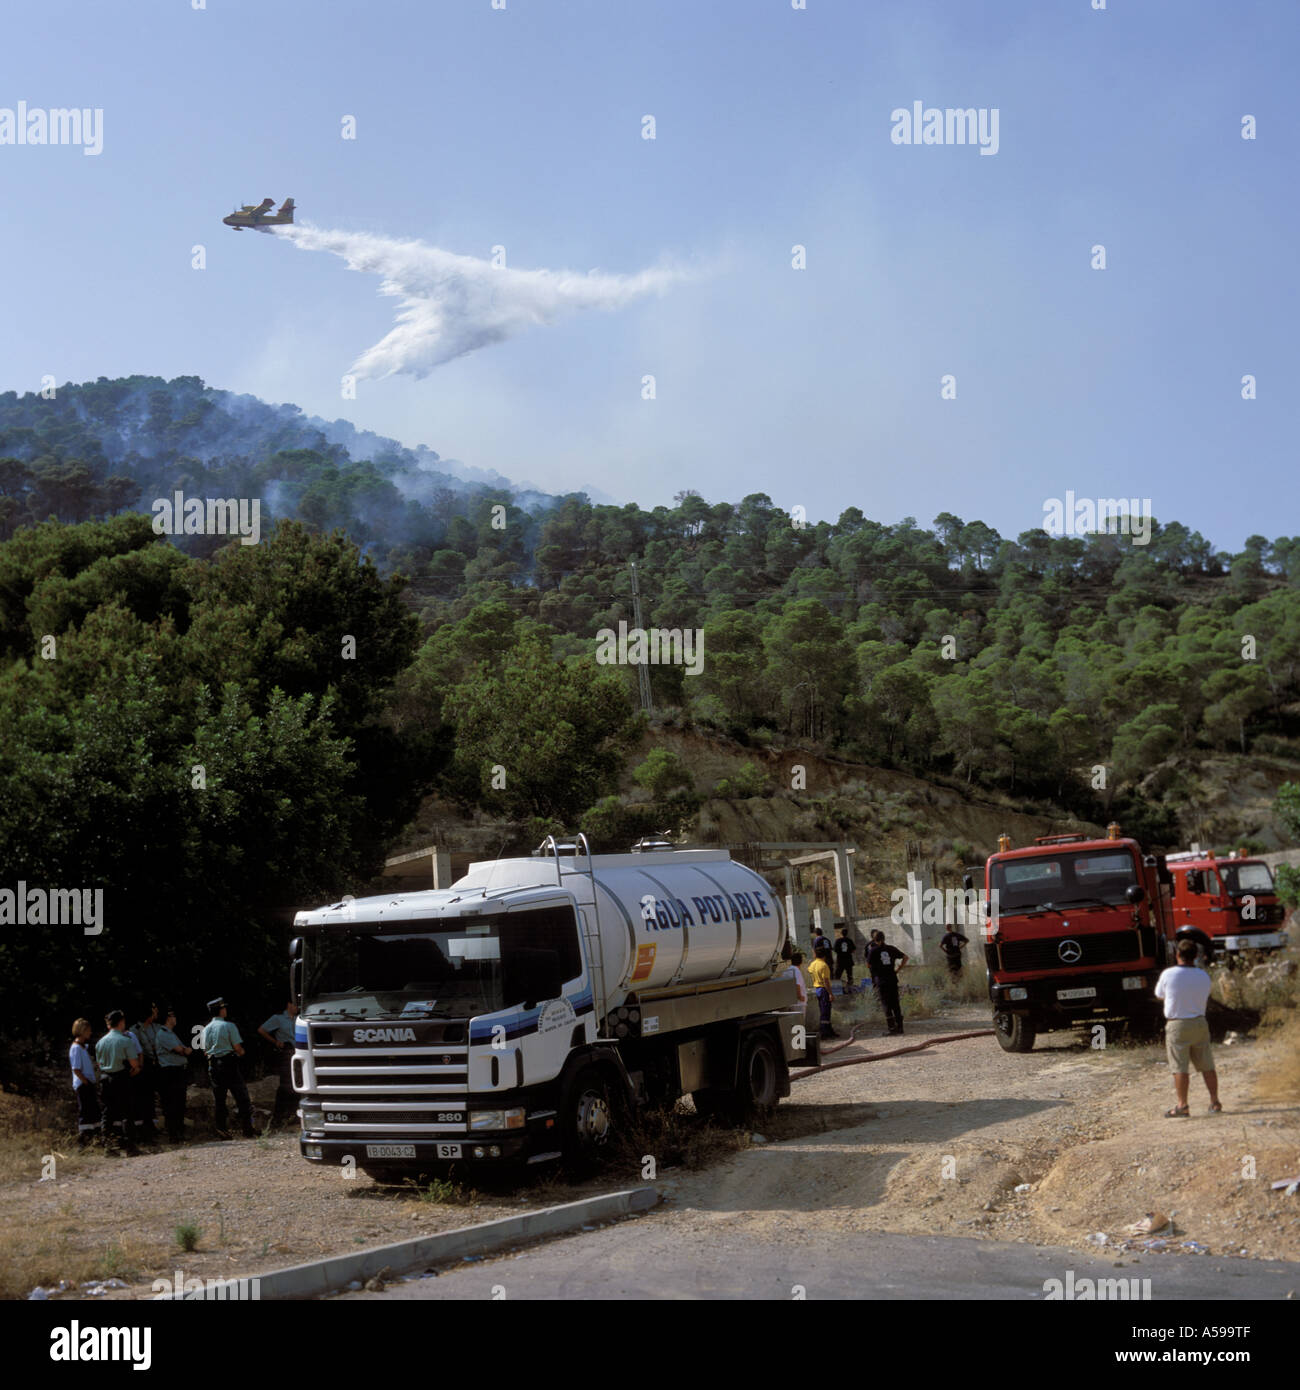 Canadair amphibious forest firefighting aircraft in operation + support operations at Paguera, Mallorca, Balearic Islands, Spain - Stock Image